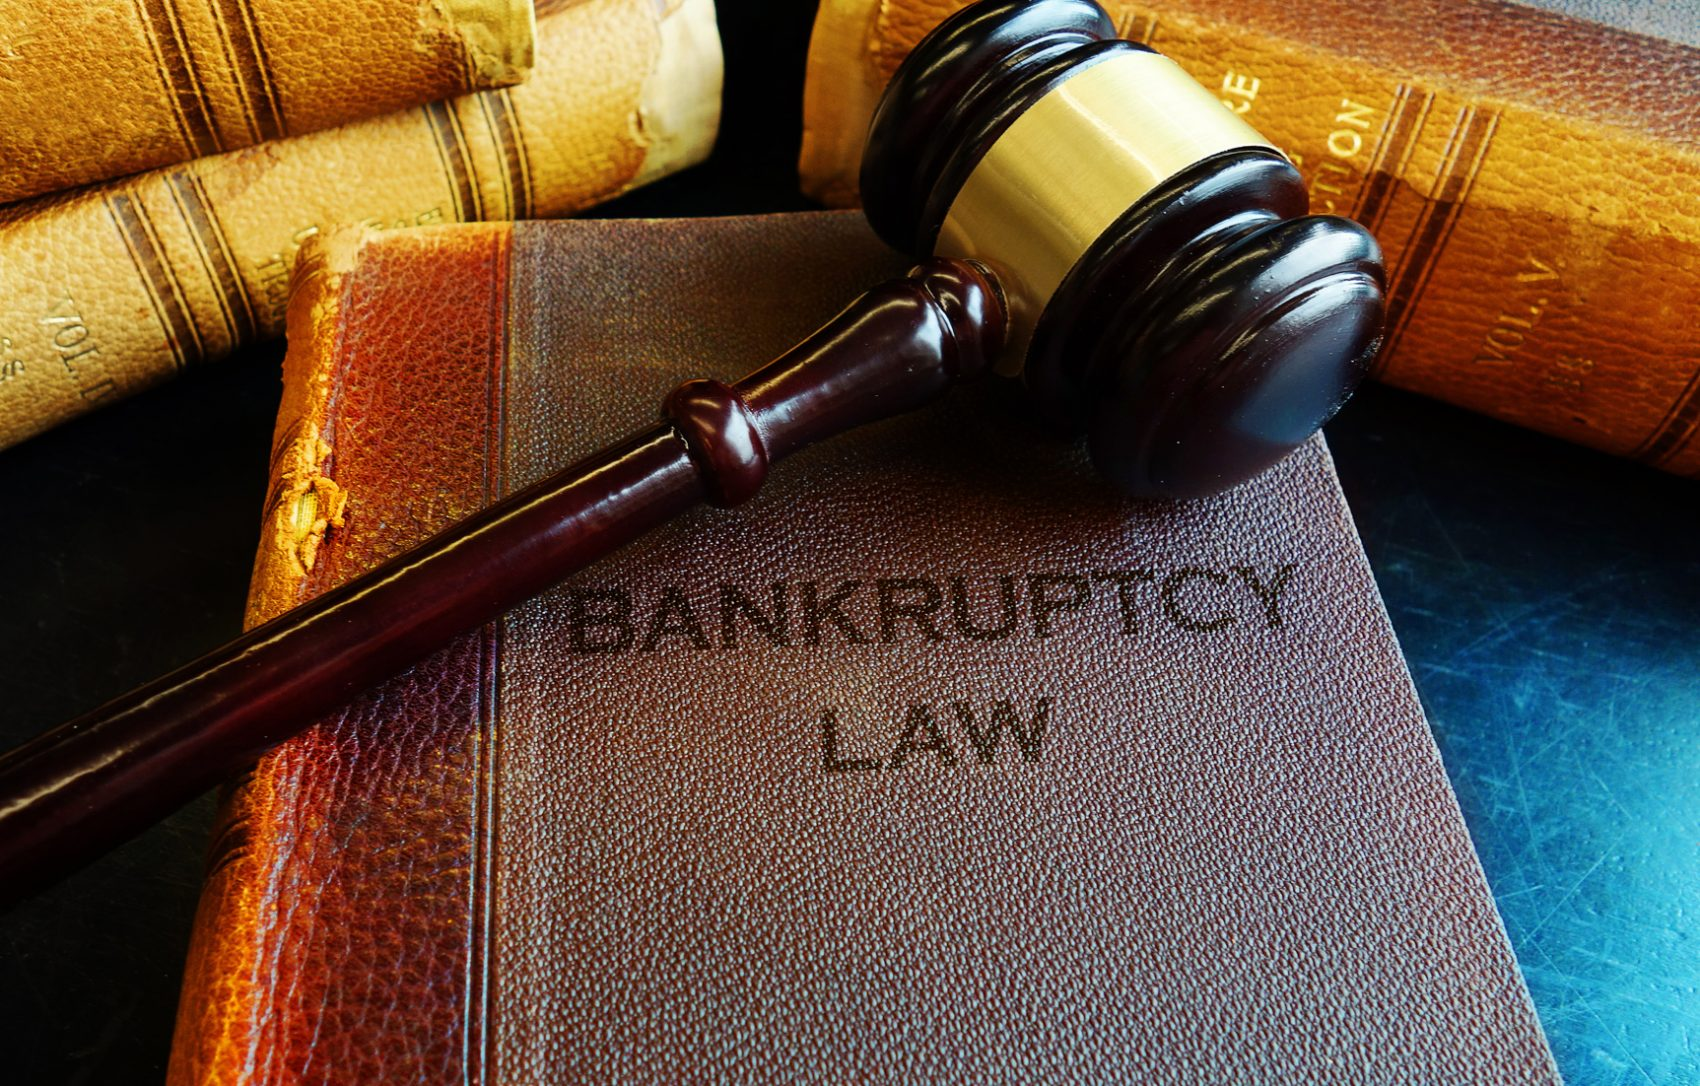 How Chapter 13 Bankruptcy Can Be Used To Deal With Credit Card Debts